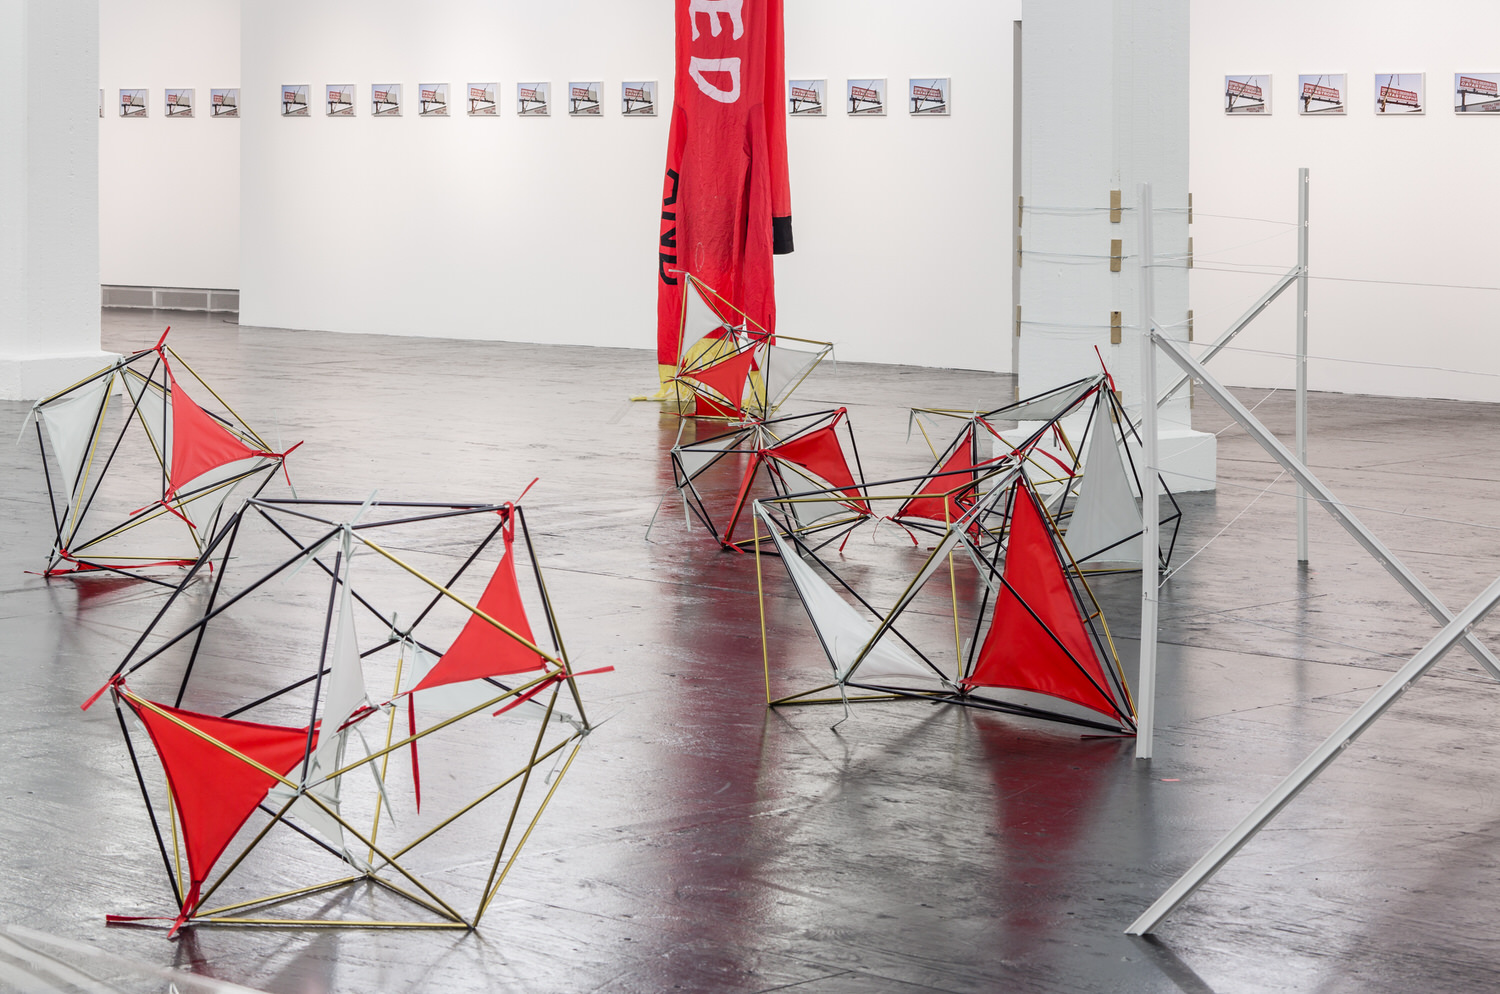 Installation view with Toponymic Proposal #2 (Comanche Grasslands), 2014